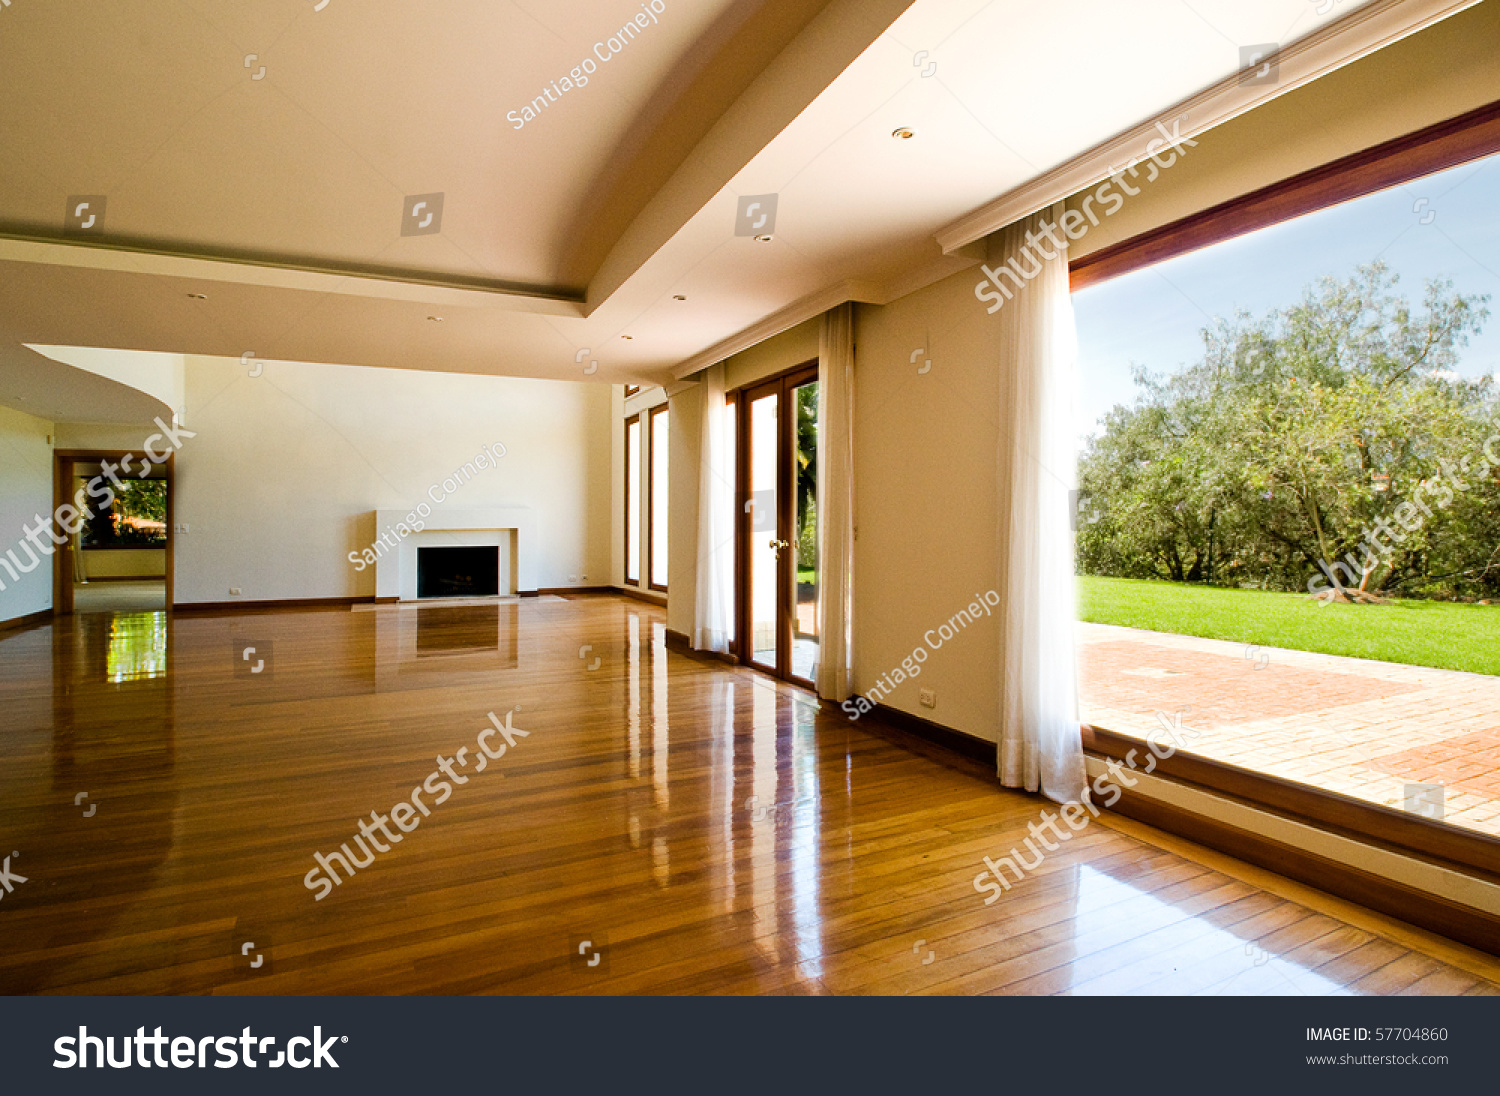 empty big living room stock photo 57704860 - shutterstock